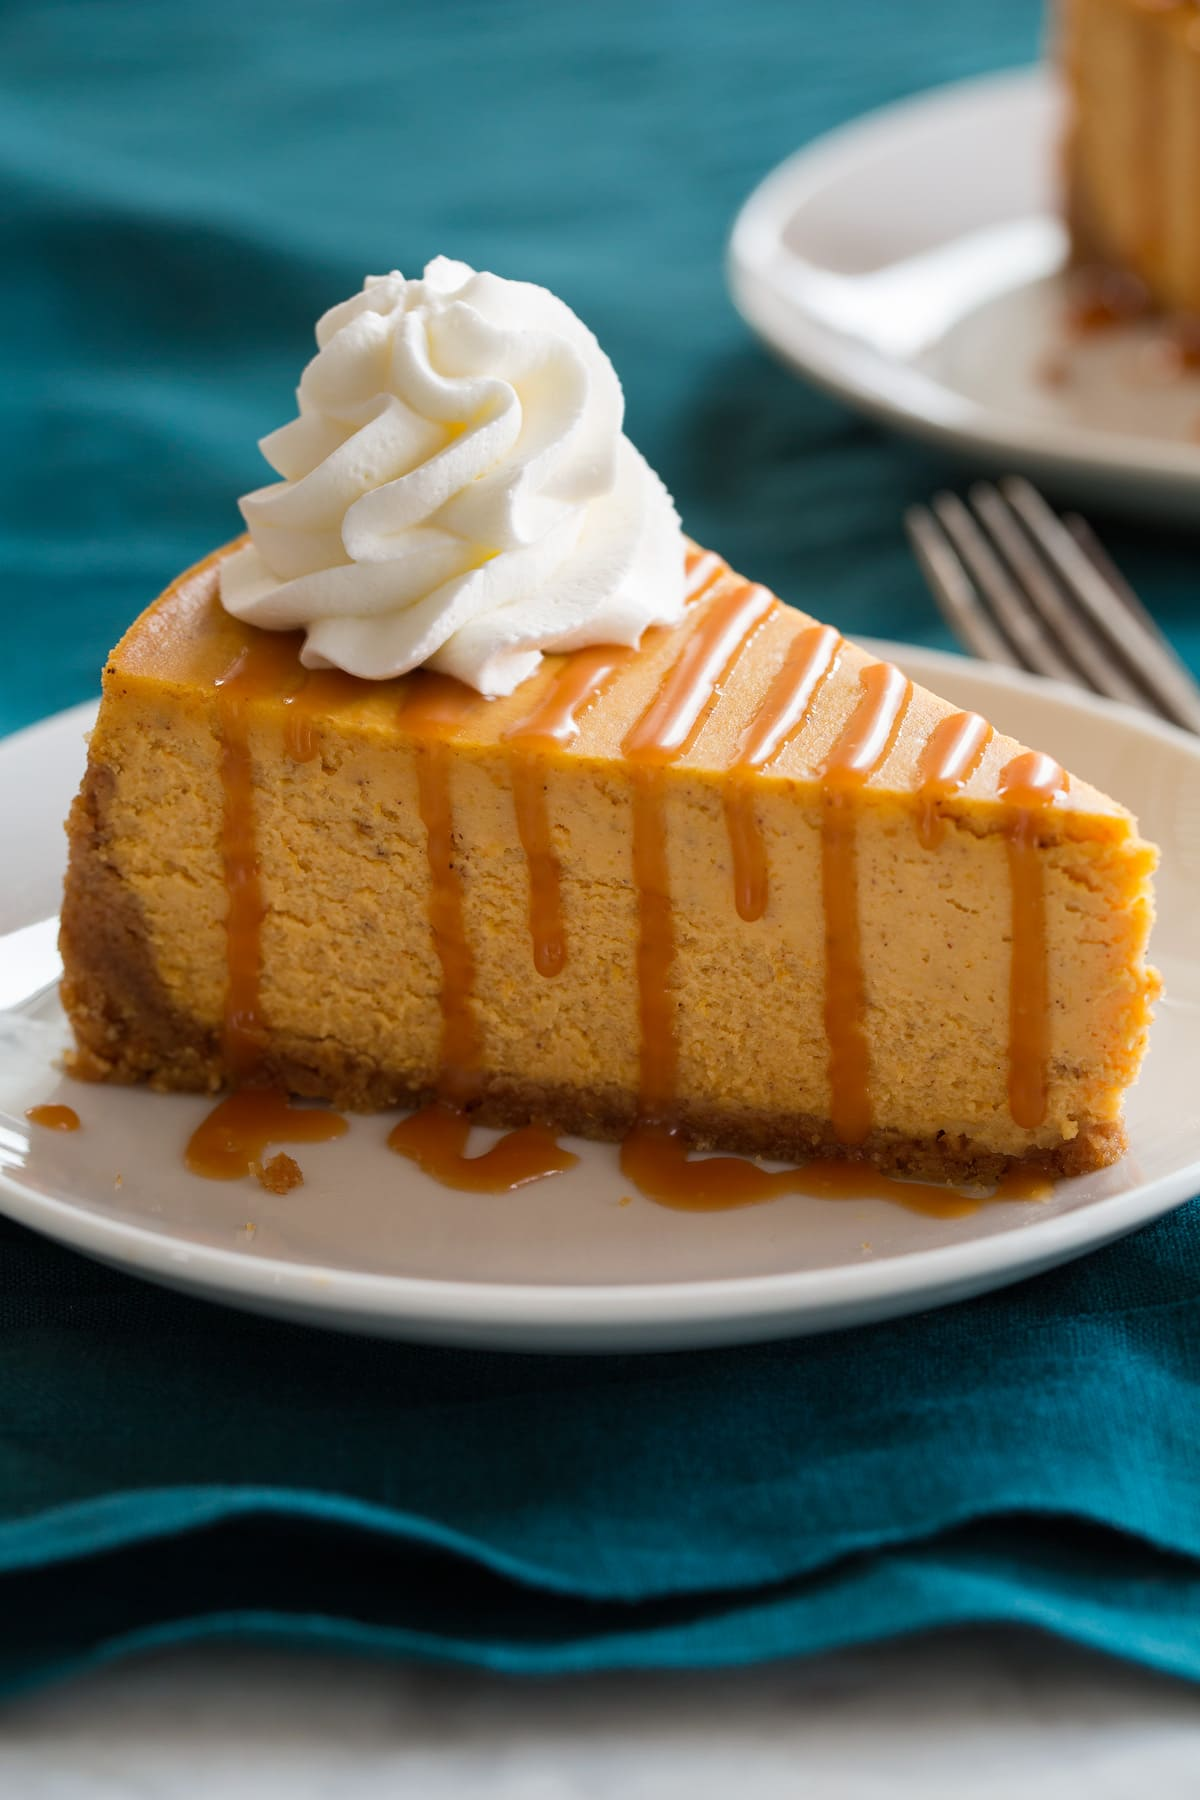 Close up image of slice of pumpkin cheesecake that is topped with caramel sauce and whipped cream.